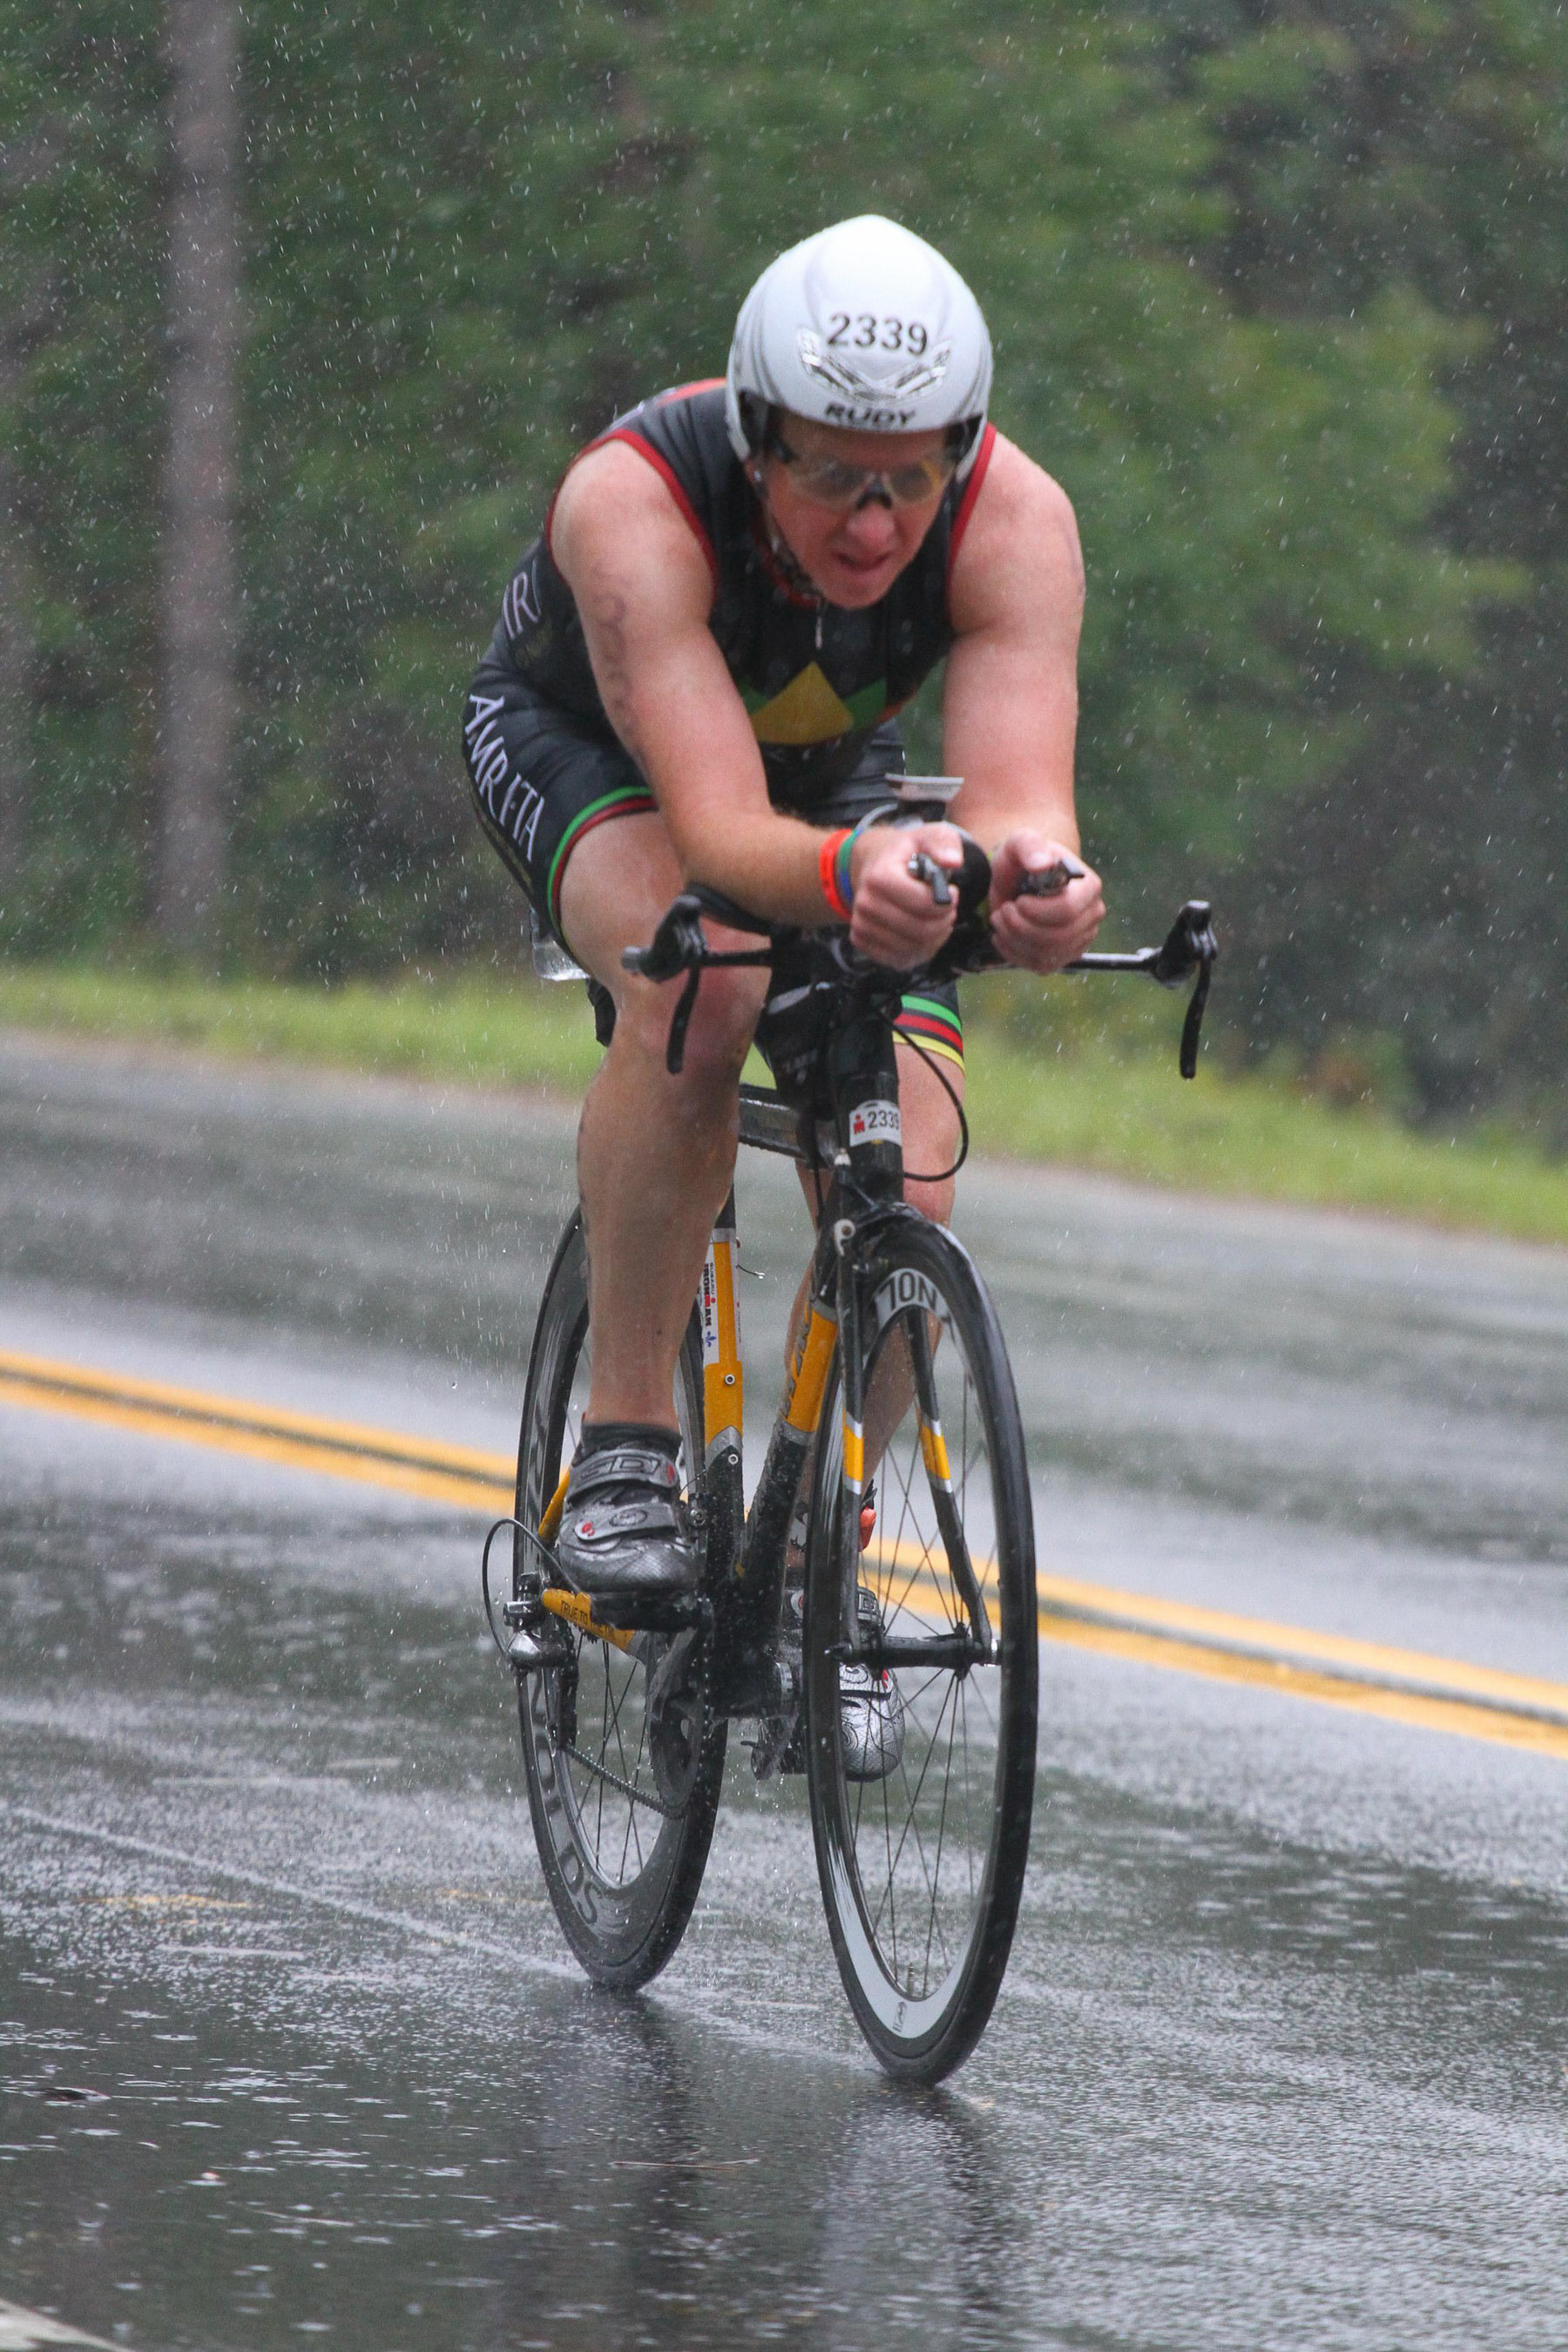 Ironman Mont-Tremblant 2016 - Bike - Torrential Rains pounded almost the entire bike ride.